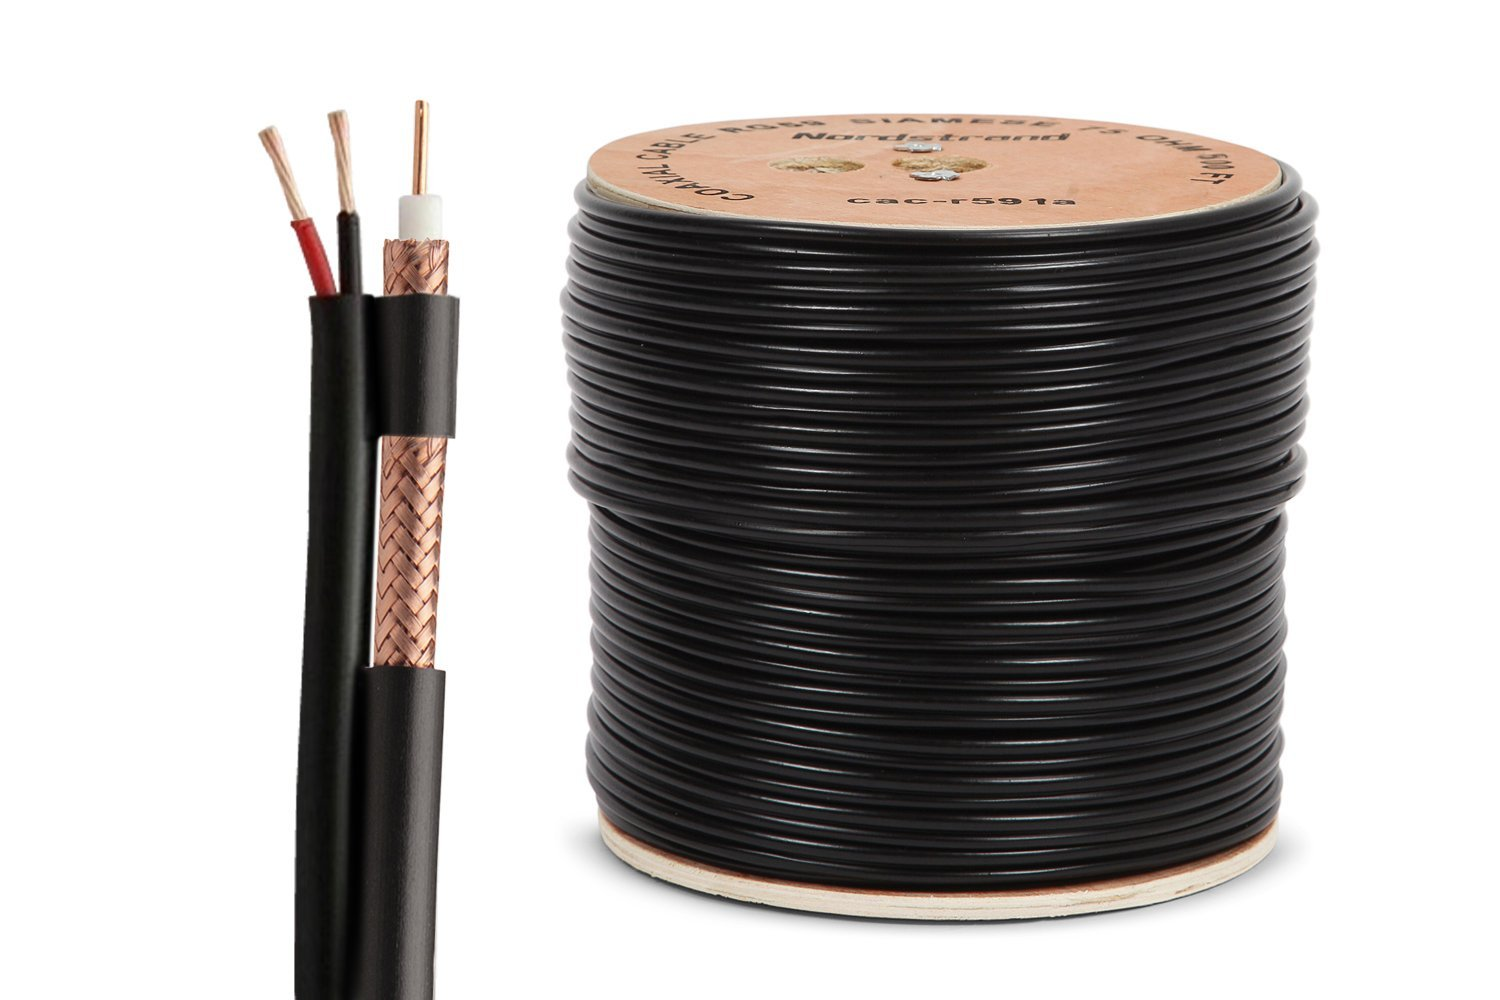 Nordstrand 500ft Siamese Coaxial Rg59 Cable Wire For Wiring Money Safety Cctv Security Camera Combo Video Power 20awg Photo